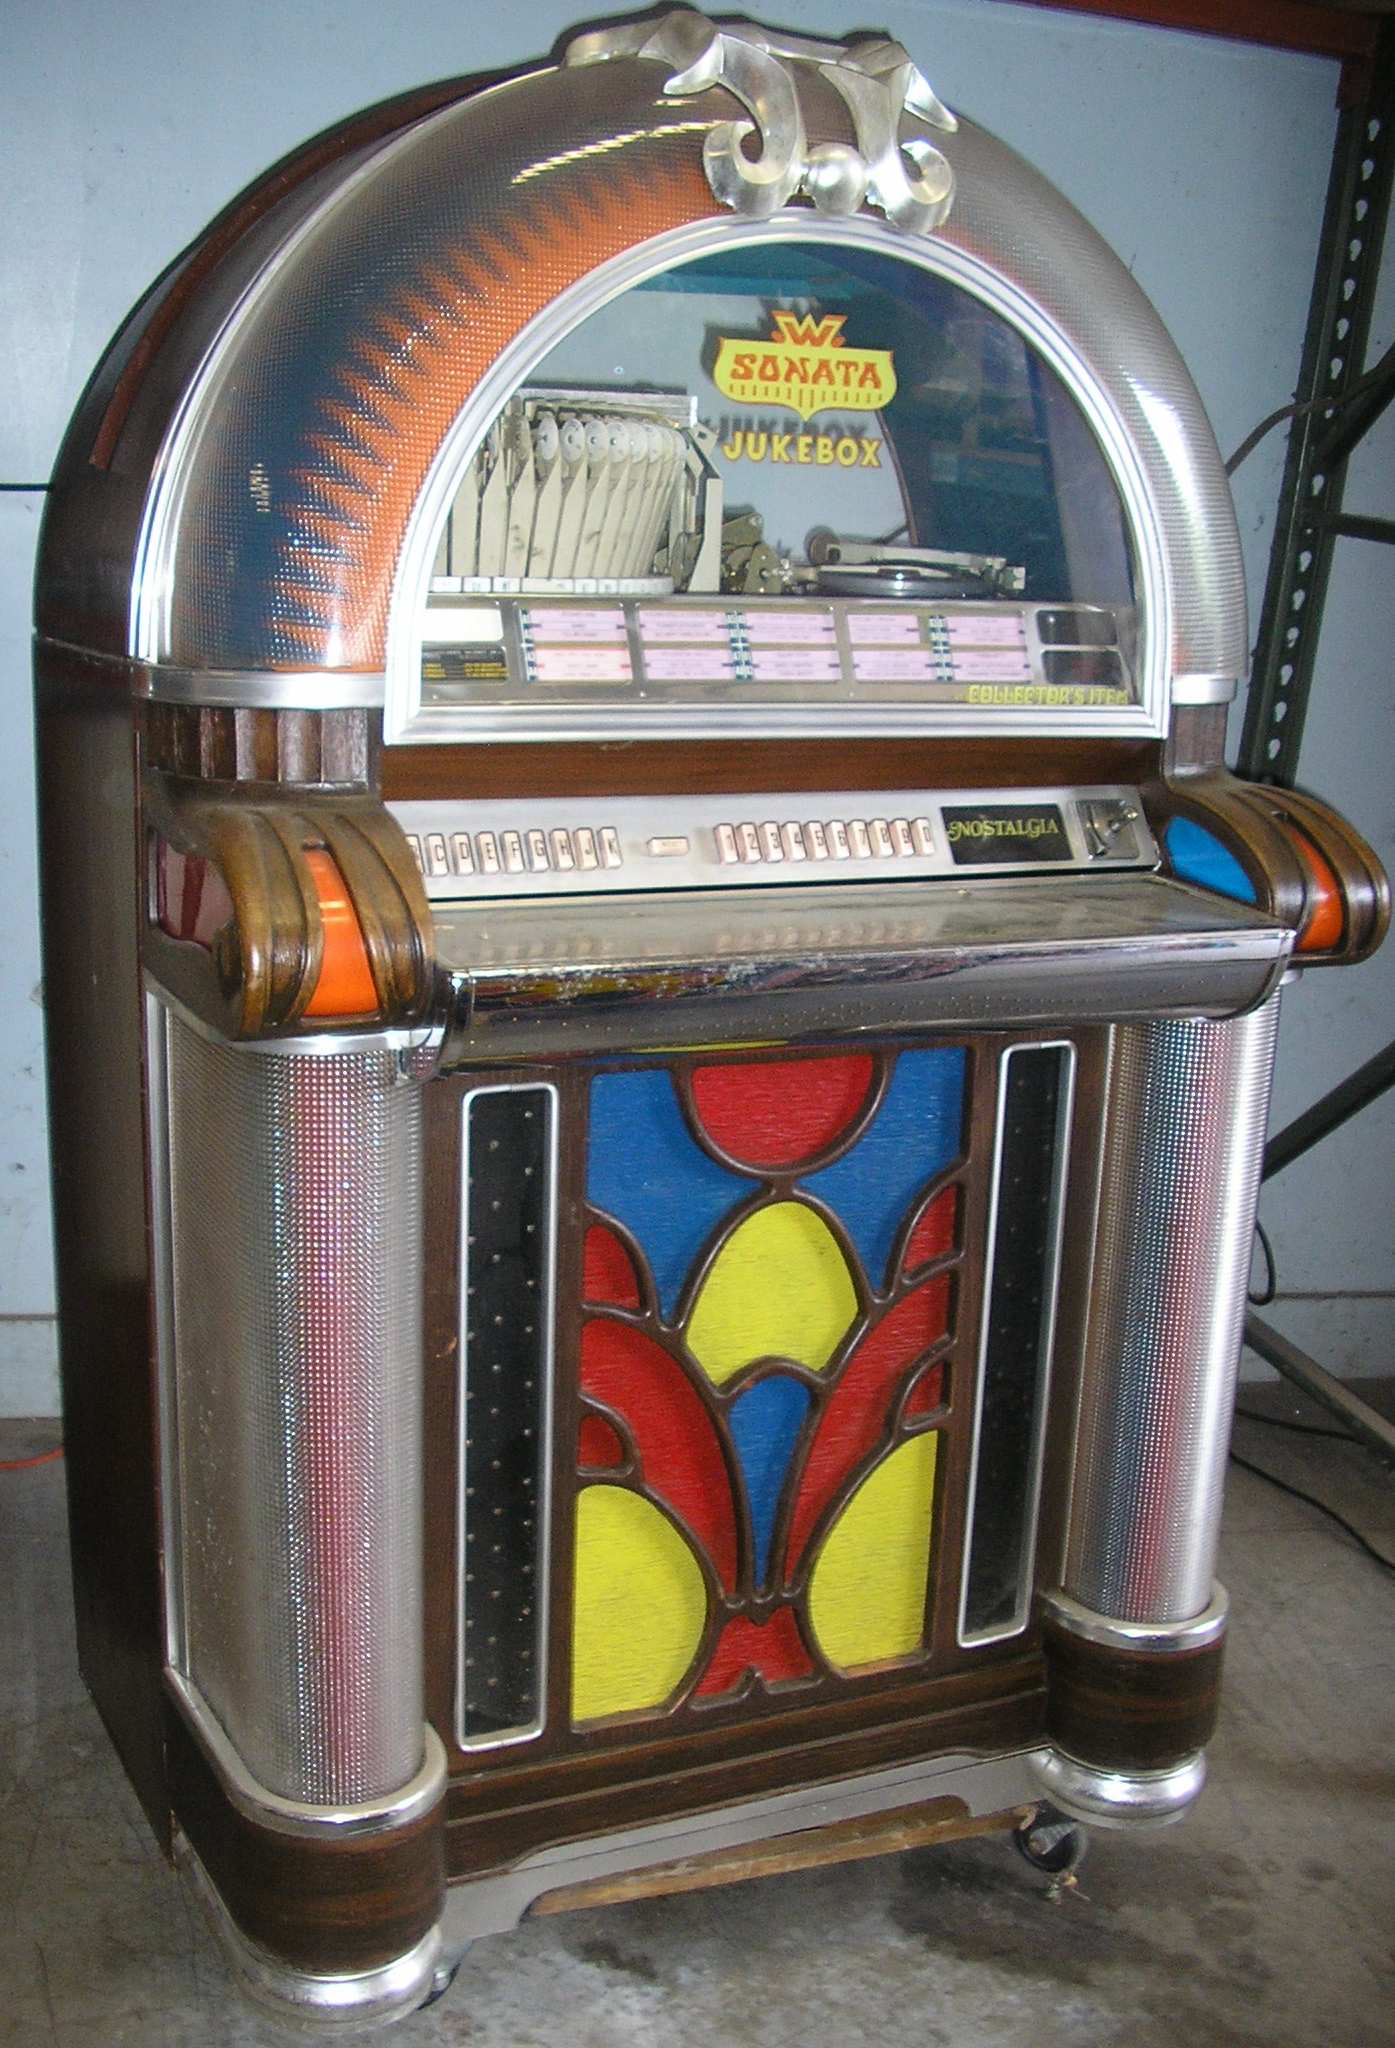 WURLITZER SONATA 1050 Jukebox for sale PLAYS 45s